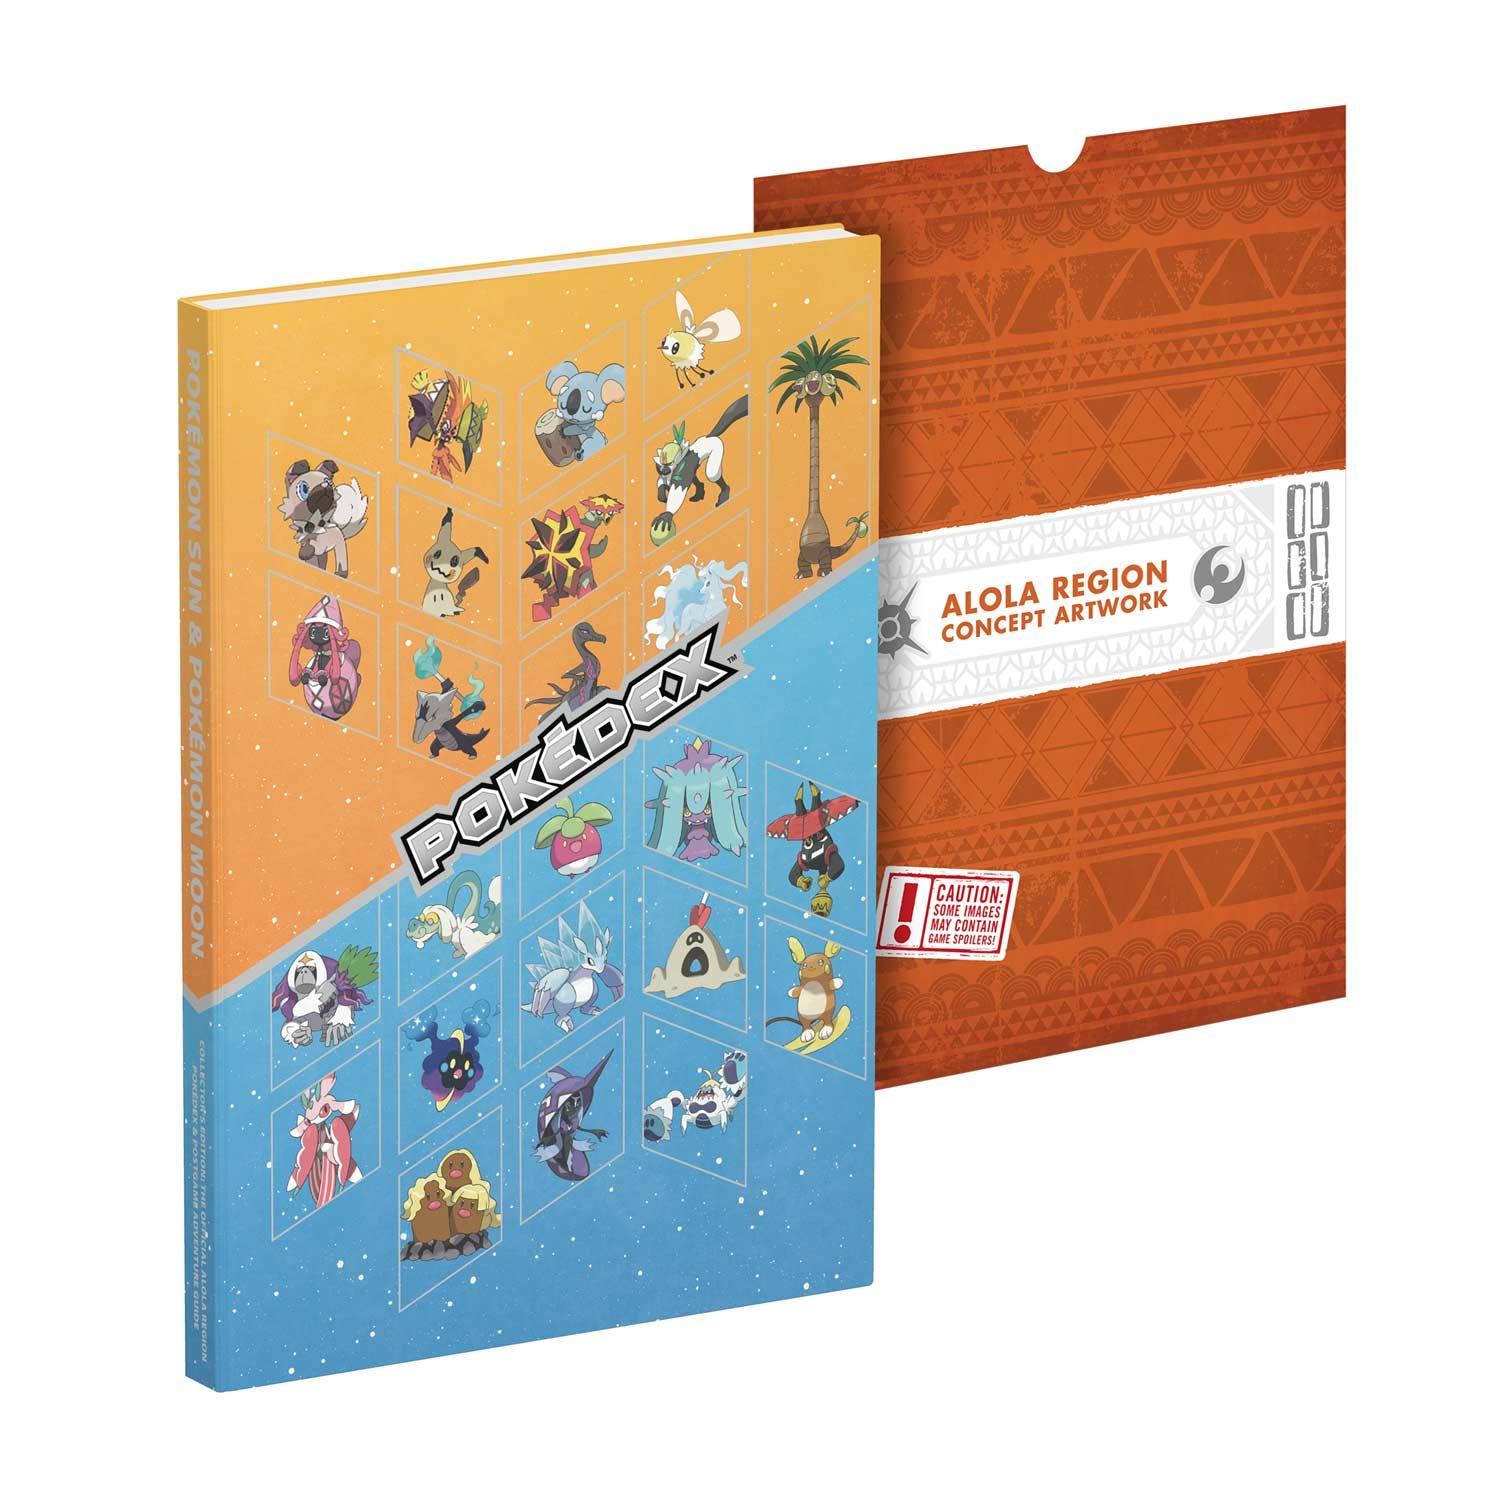 Image for Pokémon Sun   Pokémon Moon  The Official Alola Region Collector s  Edition Pokédex   da81dc4546